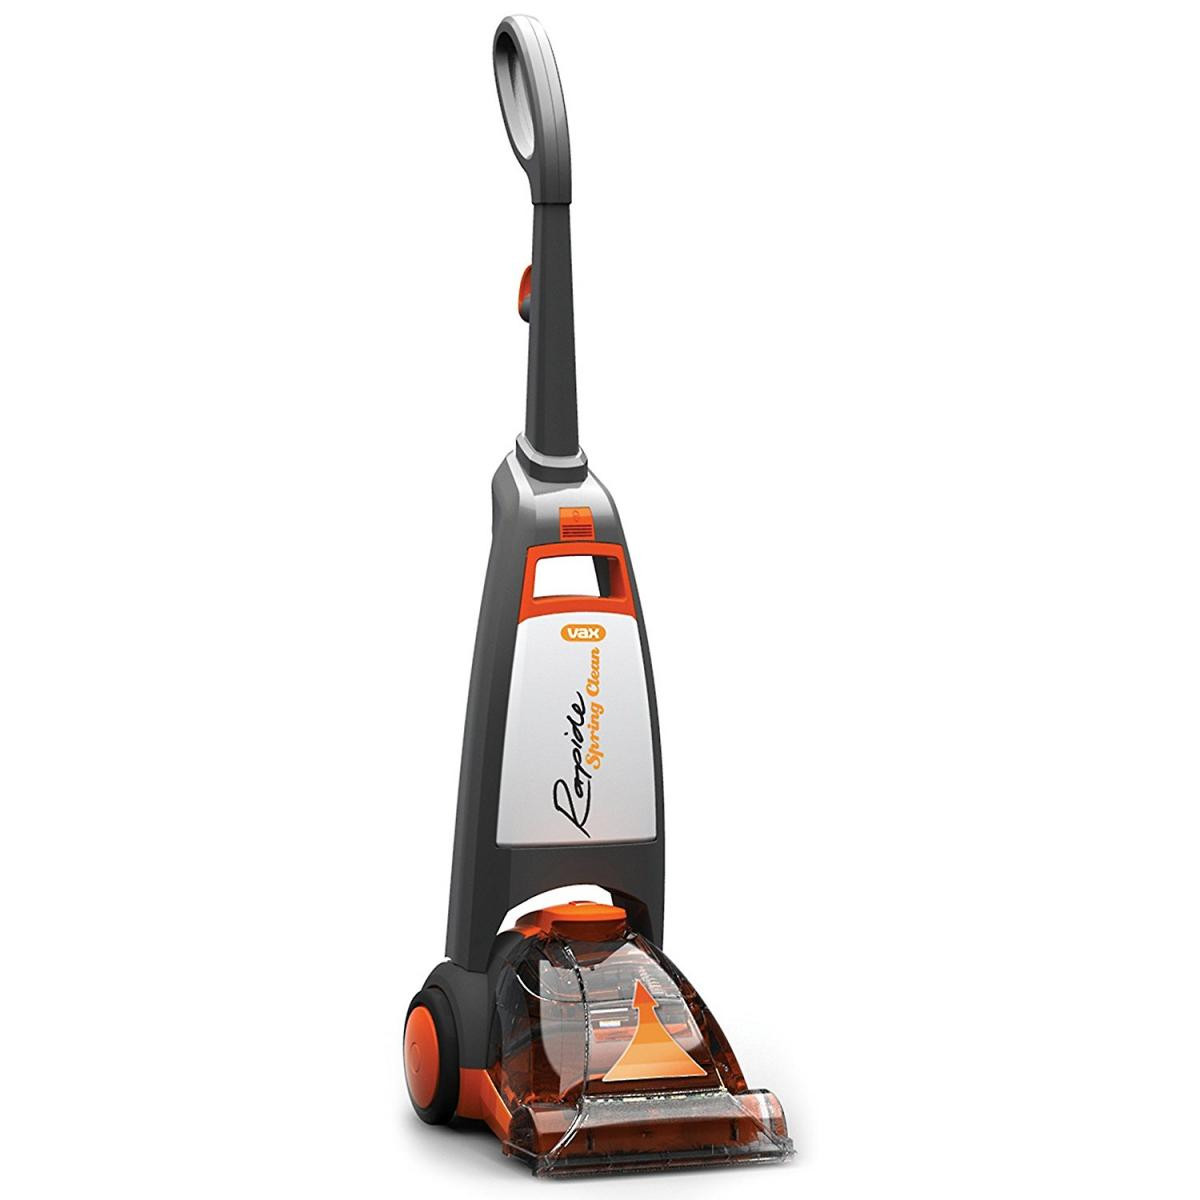 Rapide Spring Clean Carpet Washer – Now Only £75.00